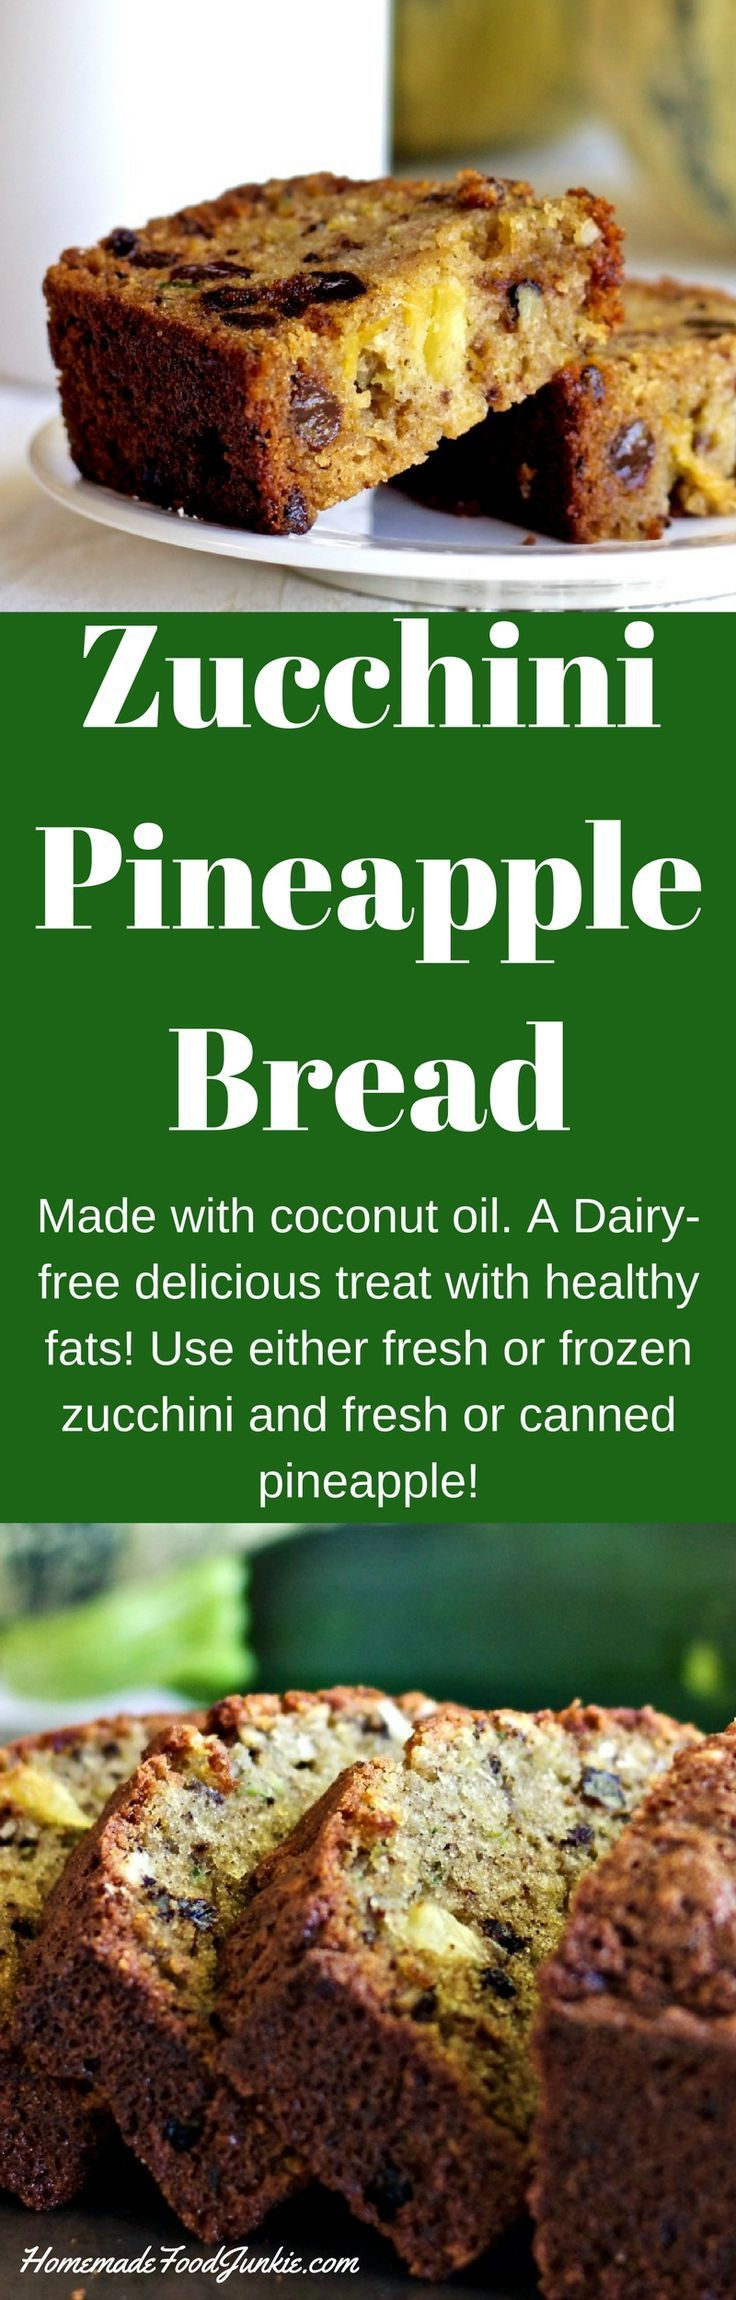 Zucchini Pineapple Bread made with coconut oil for dairy free. Instructions for fresh or canned pineapple. Delicious harvest recipe. Great for parties!